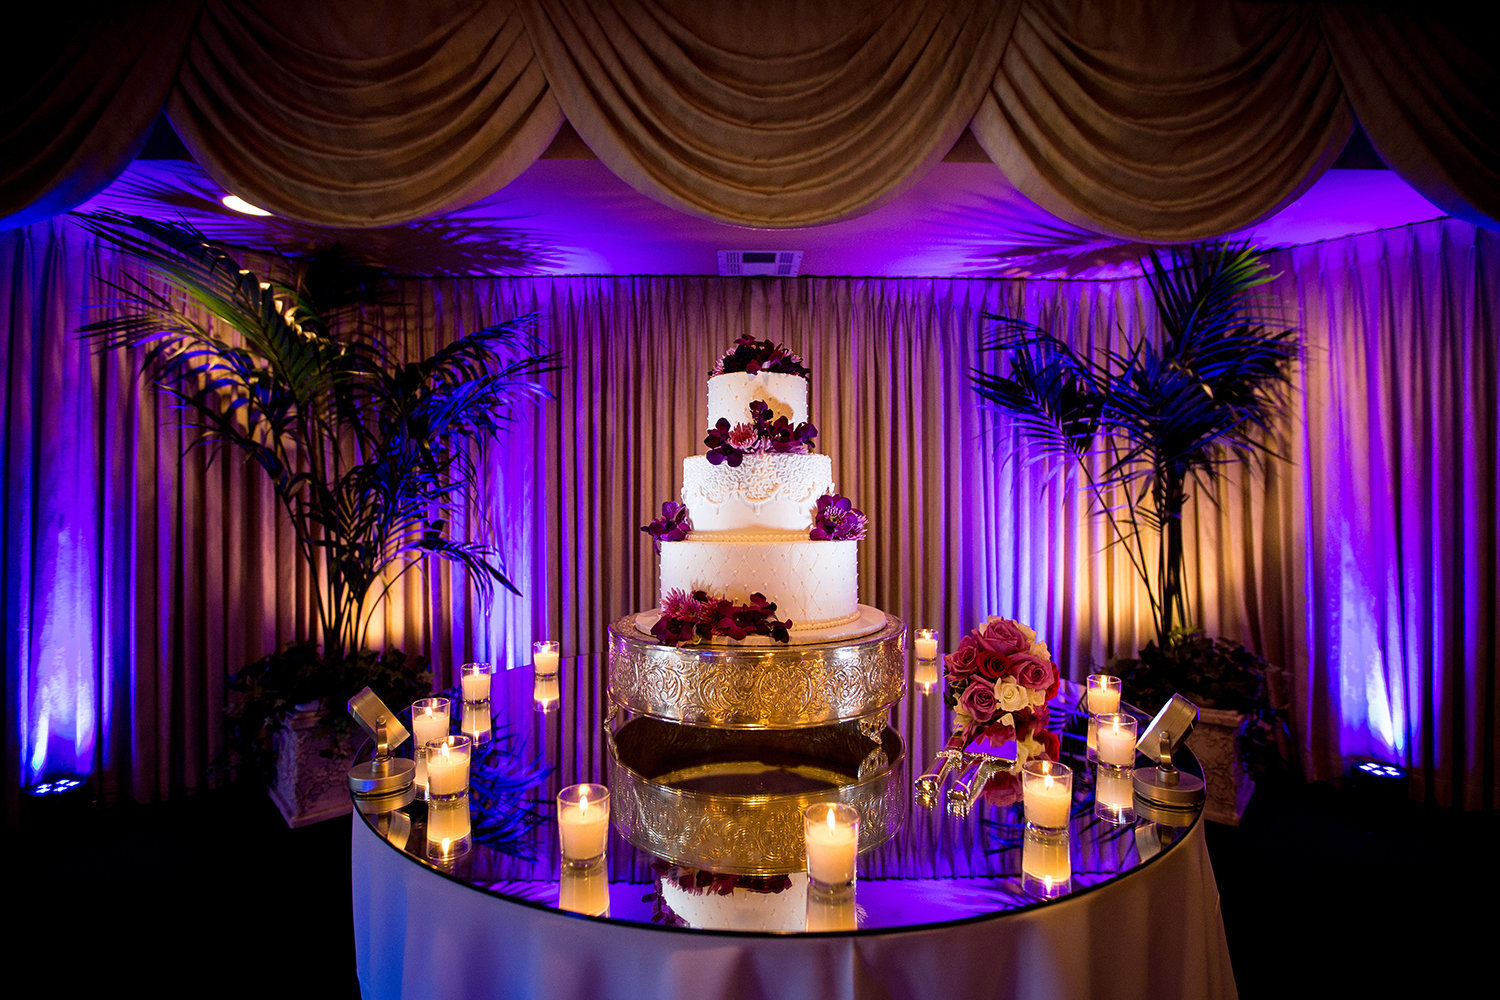 Grand Tradition wedding photos beautiful cake